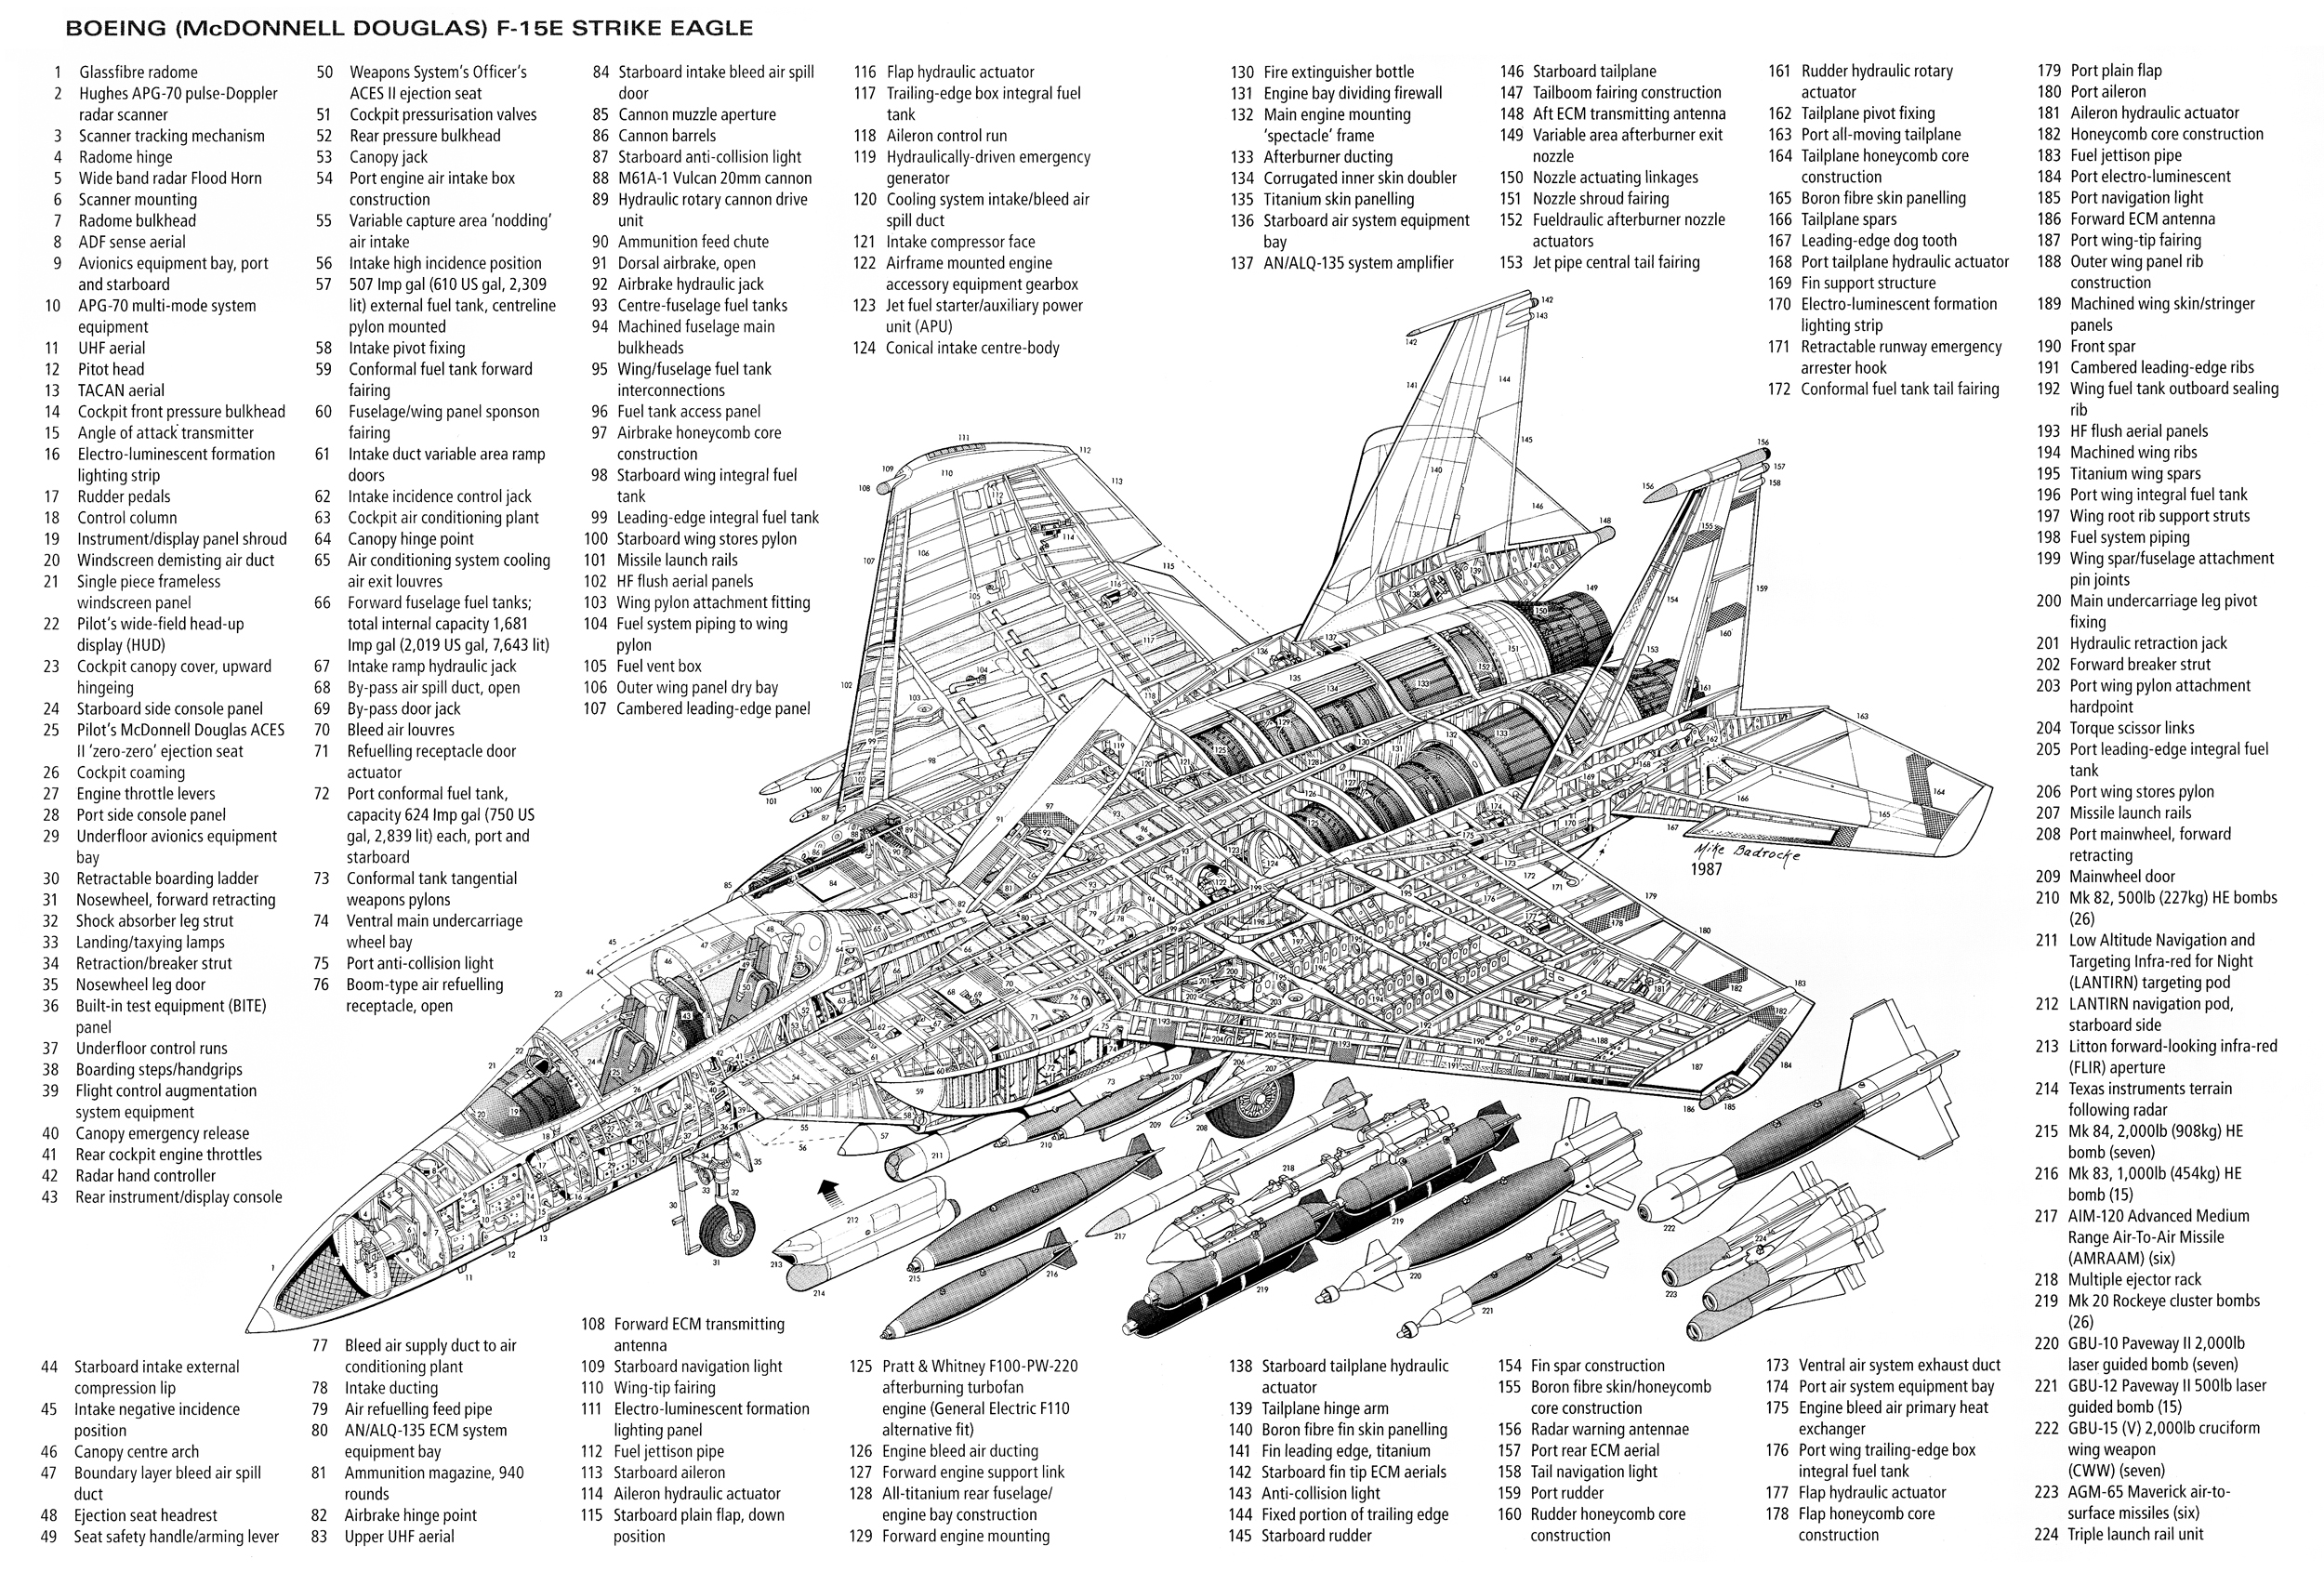 eagle wing diagram wiring for sony car stereo boeing mcdonnell douglas f 15 cutaway spaccato